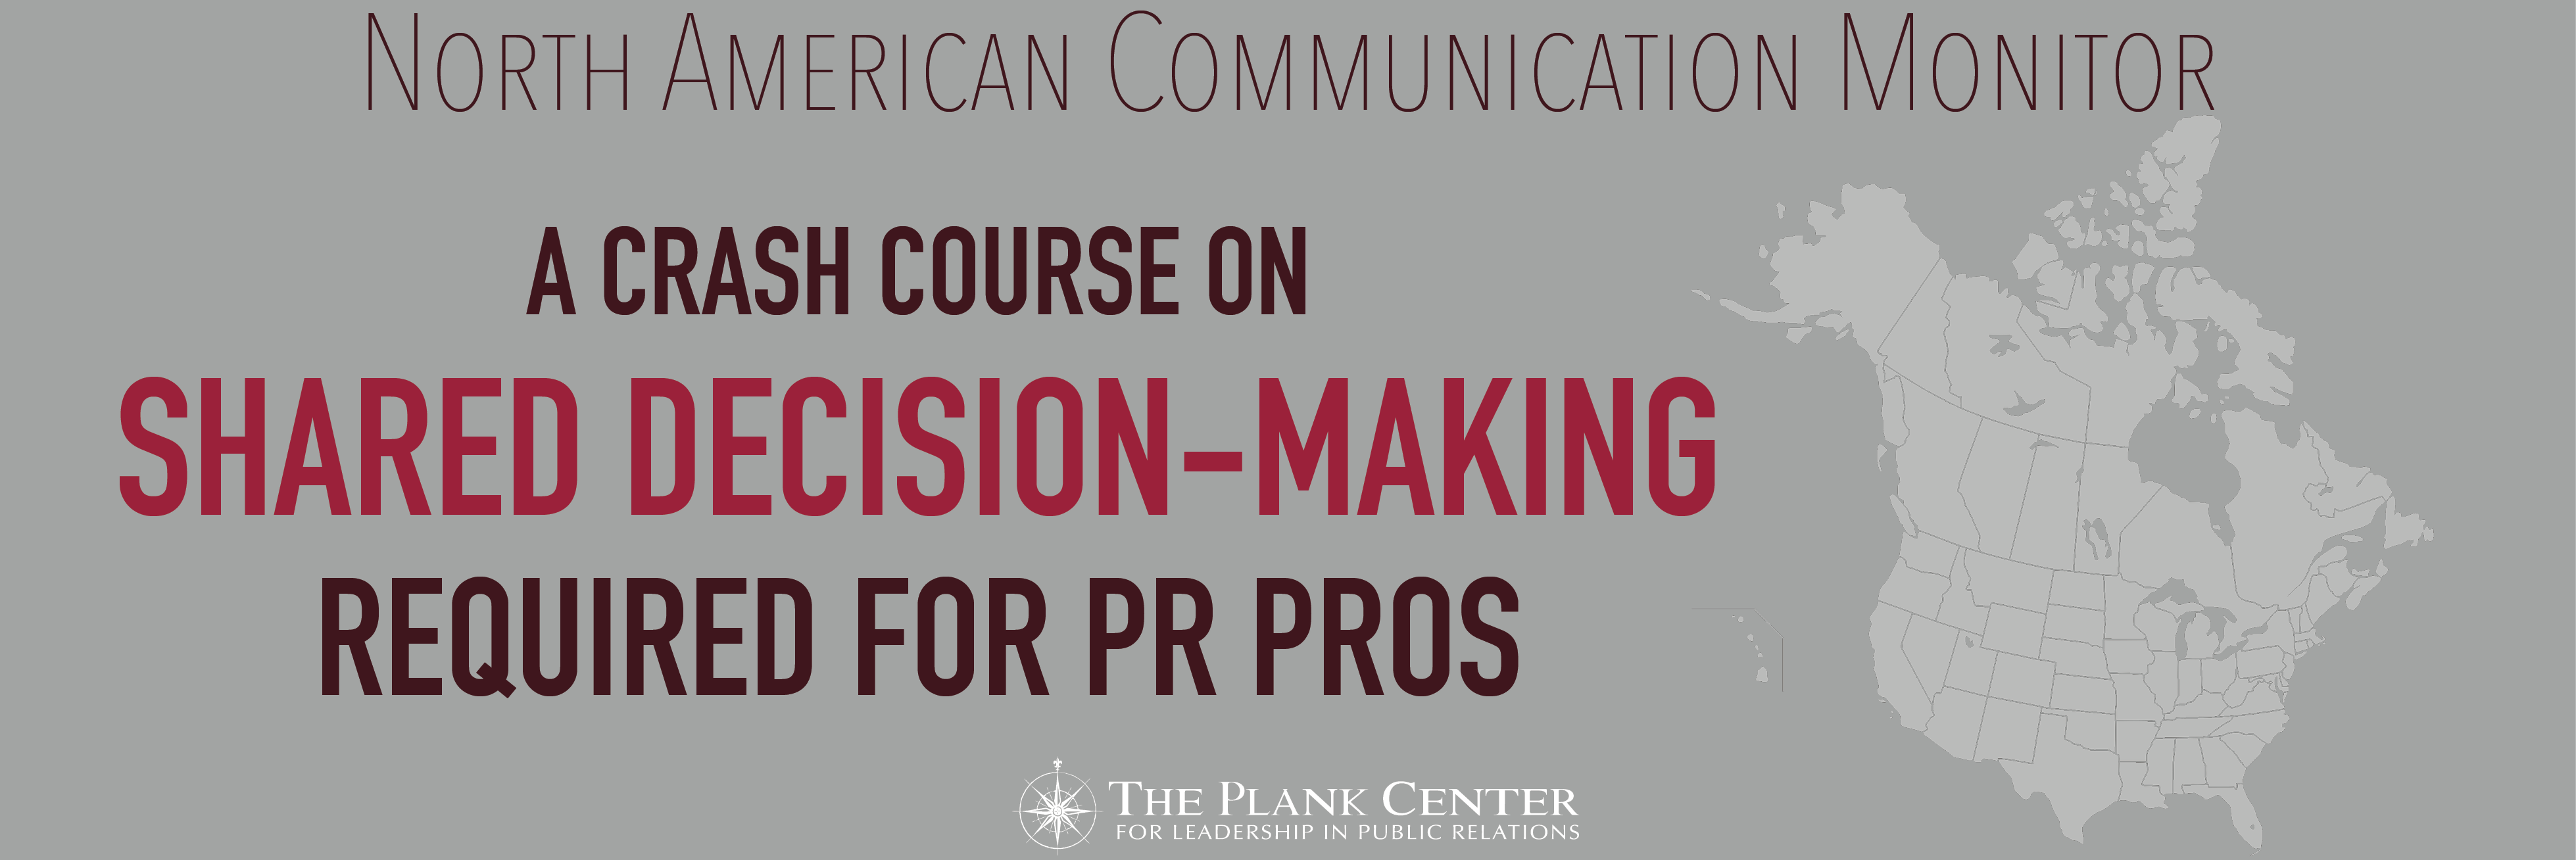 PR pros need a crash course on shared decision-making